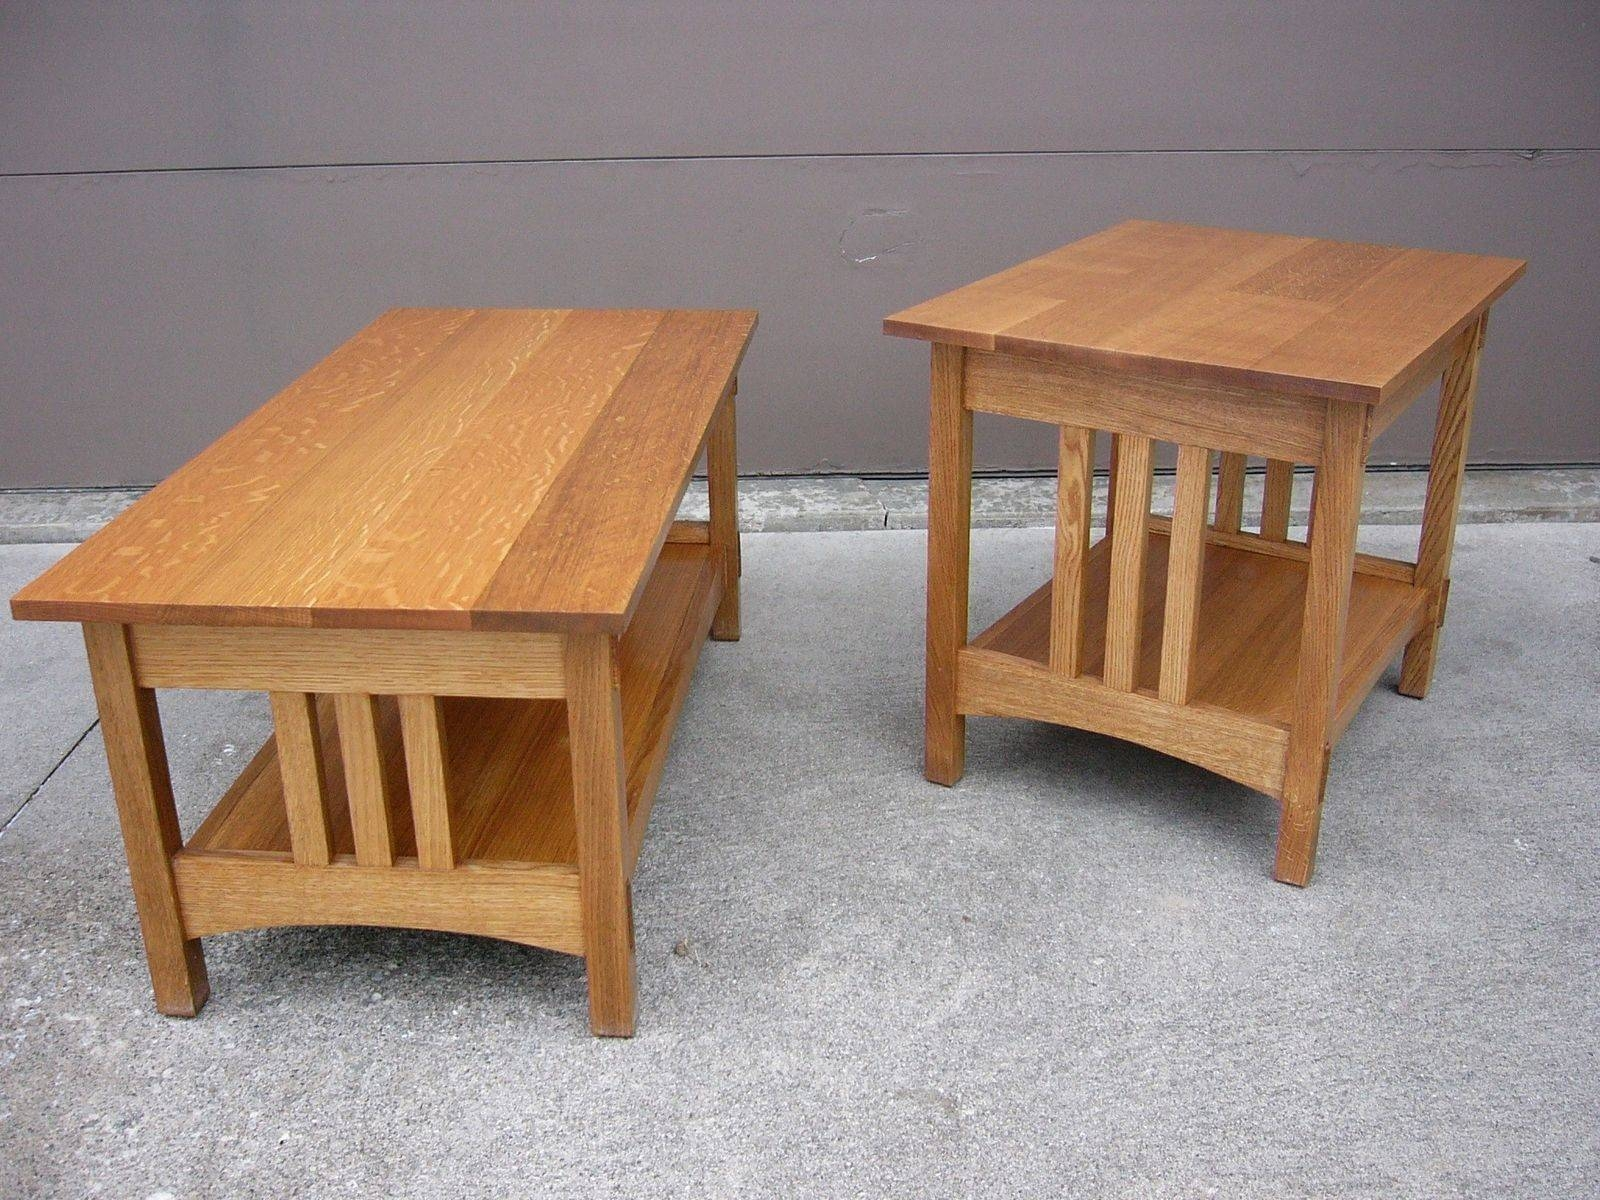 Handmade Quartersawn Oak Mission Style Coffee Table And End Table intended for Quality Coffee Tables (Image 16 of 30)